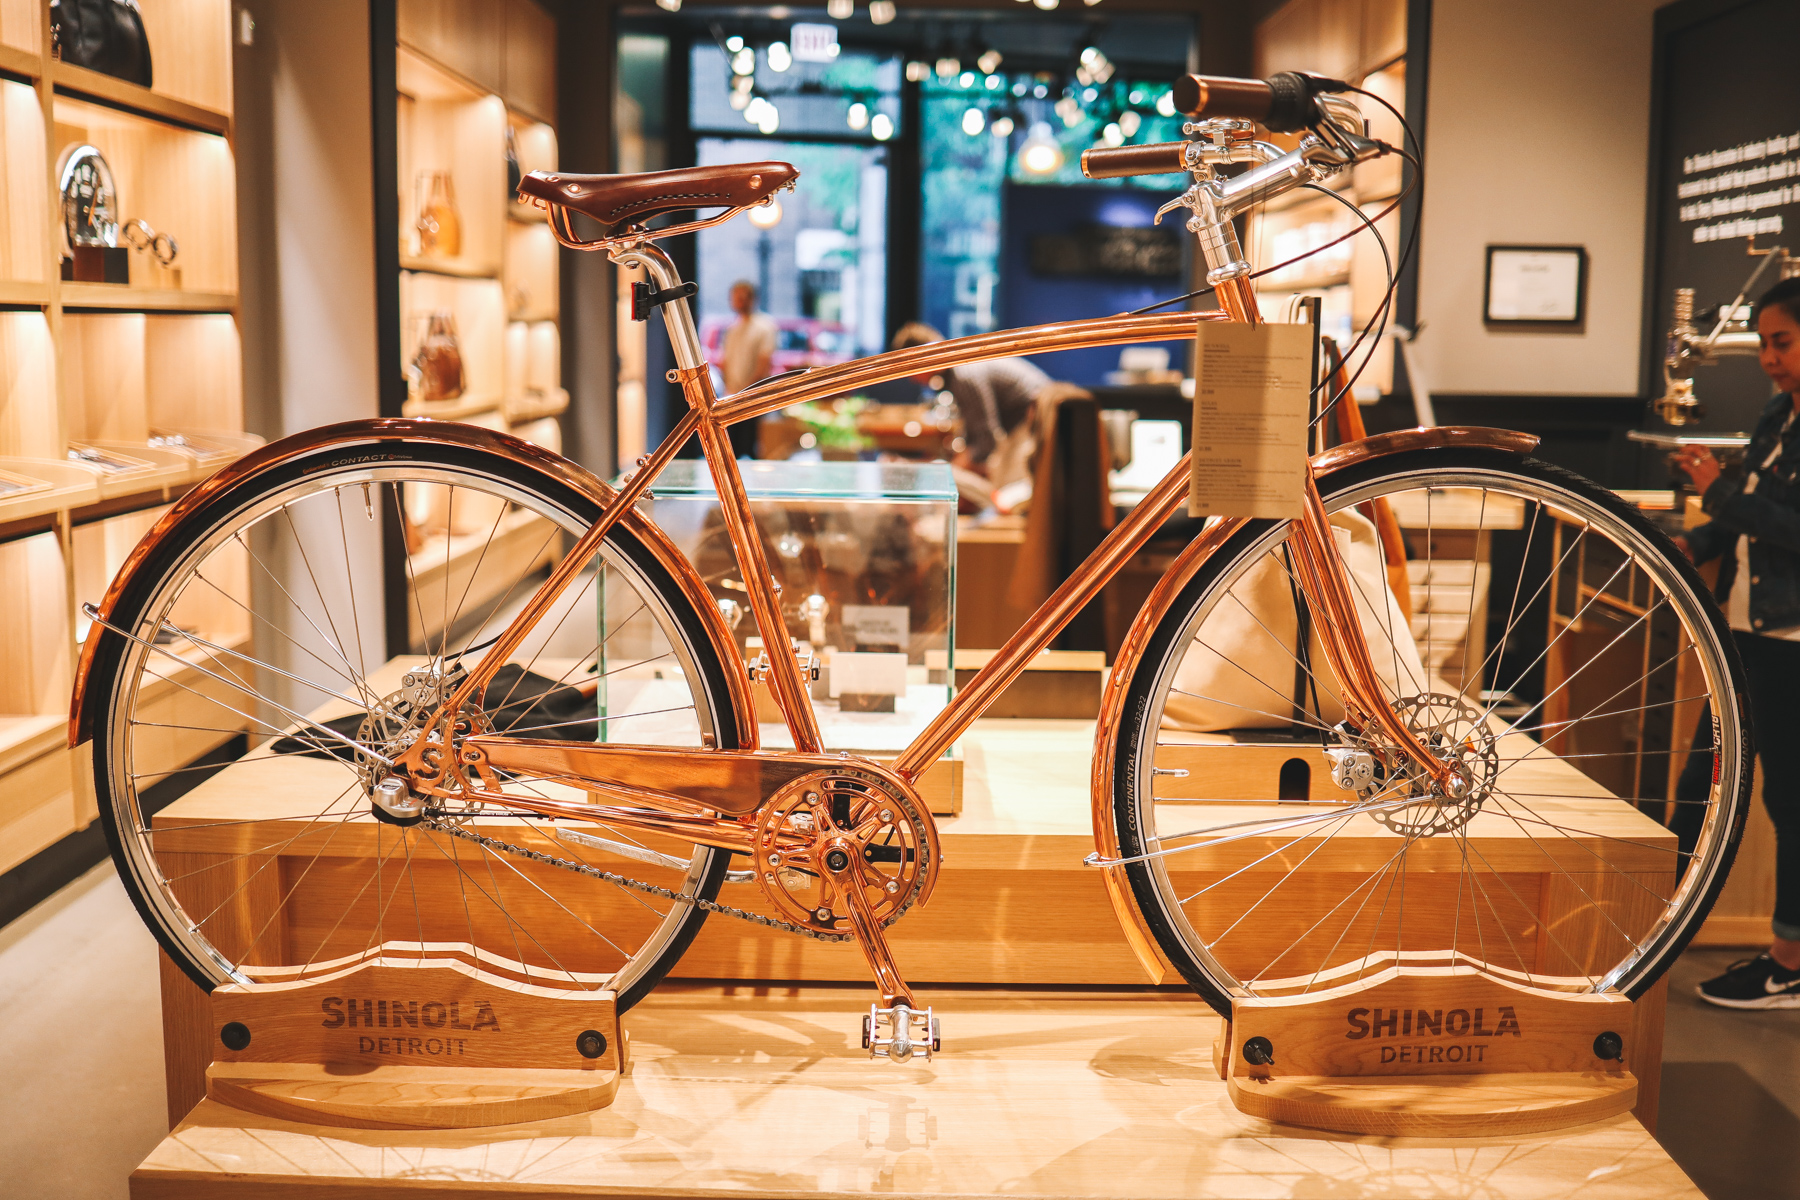 Shinola Bike